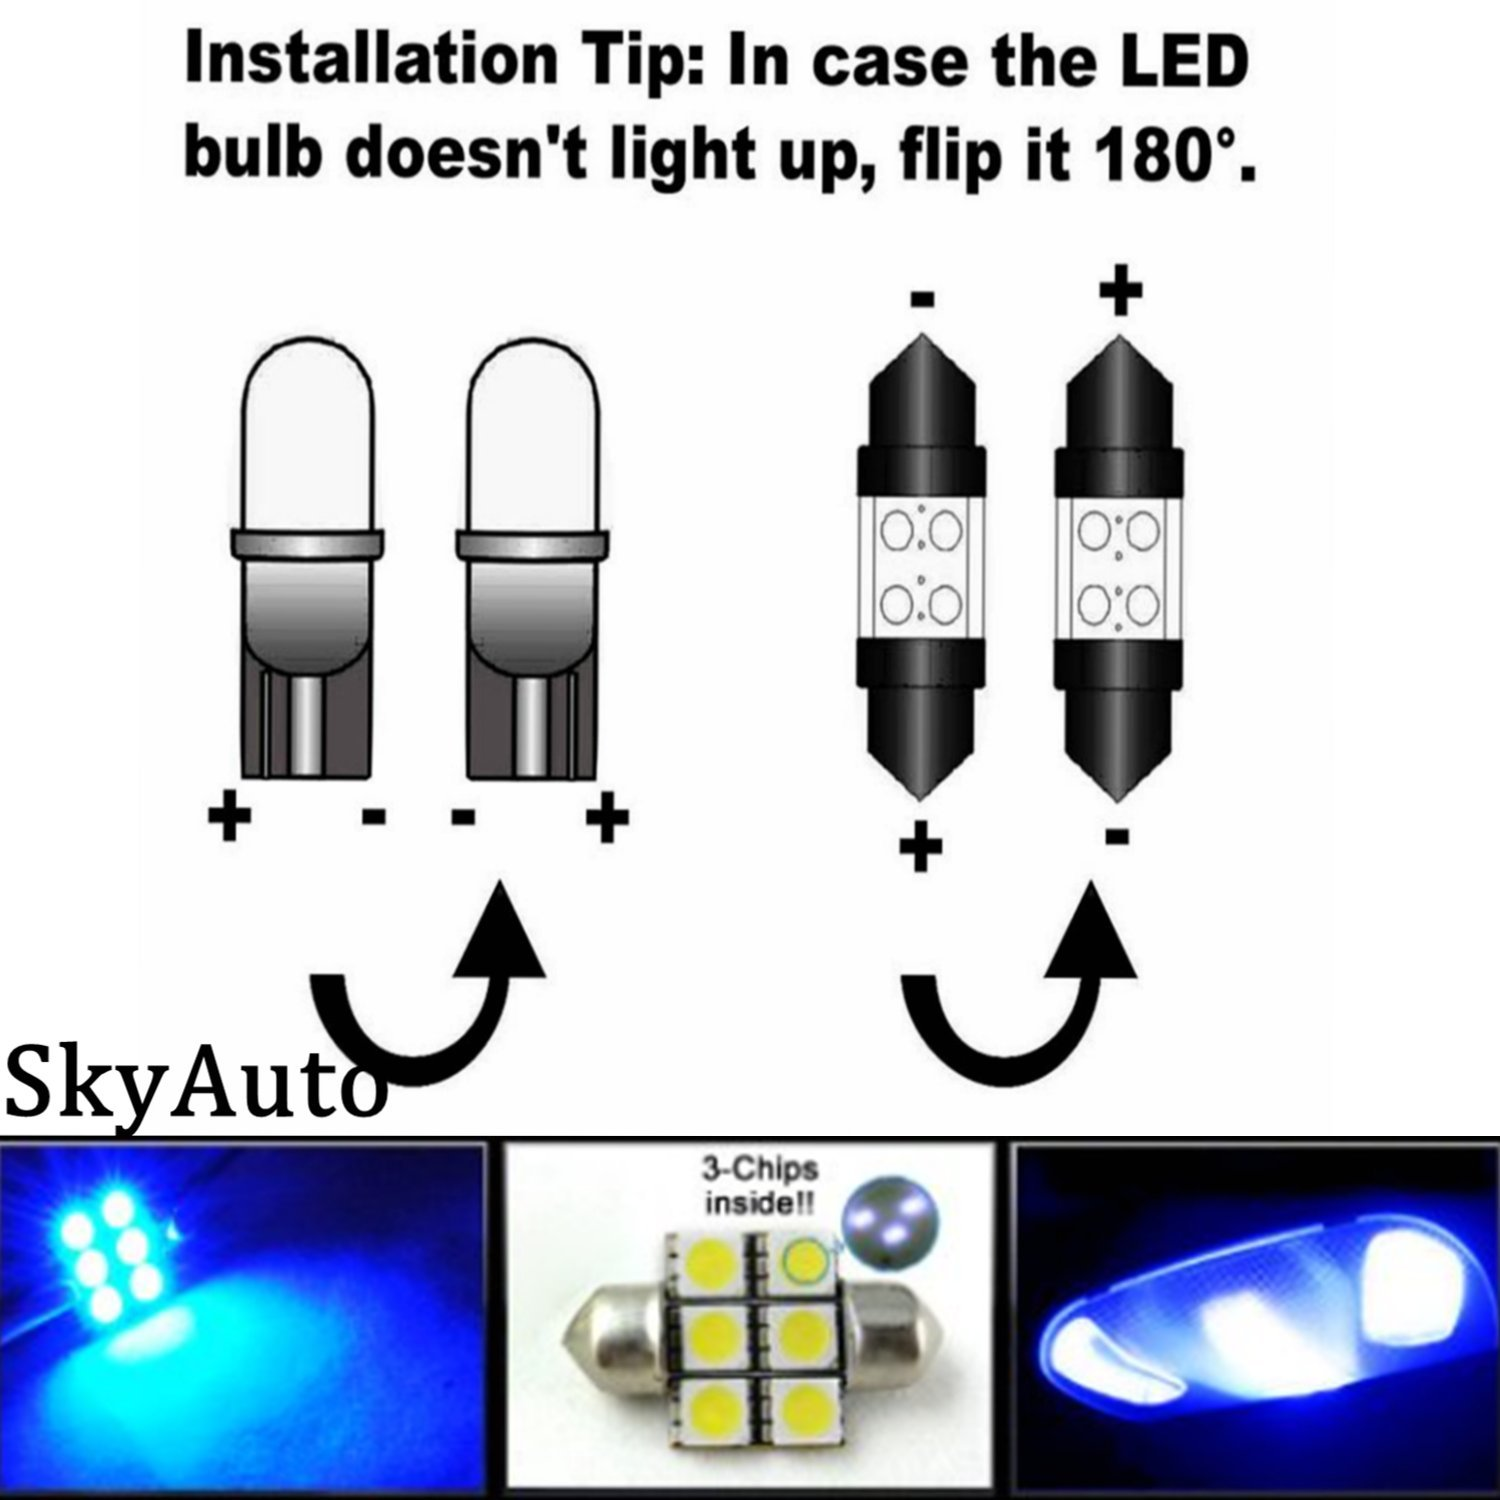 Amazon.com: Hummer H3 2006-2010 LED Premium Blue Light Interior Package Kit (13 pcs) : Automotive